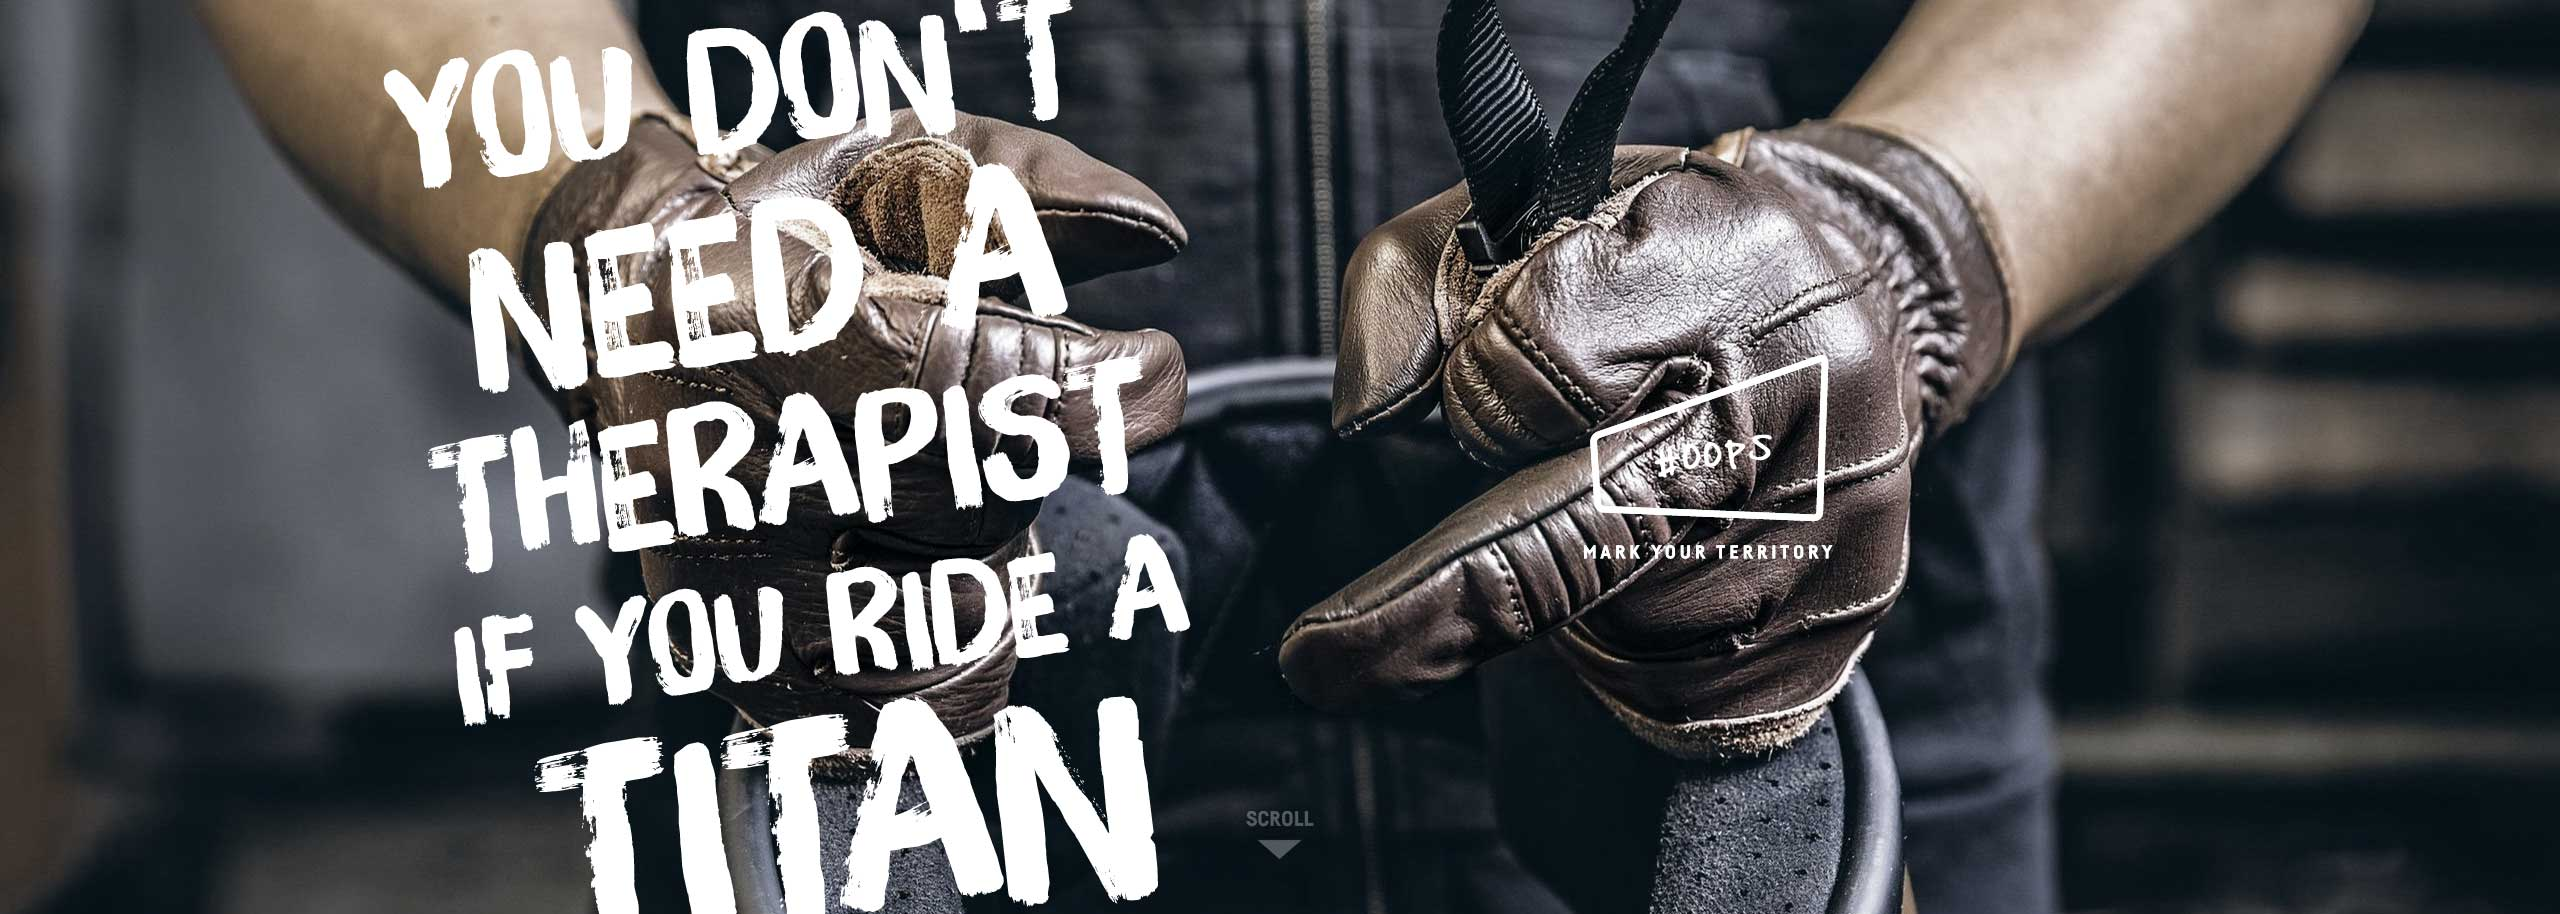 Titan-Motorcycles-YouDontNeedATherapistIfYouRideAMotorcycle-Quote-Motorcycle-TITAN-is-Good-for-You#Oops_Cafe-Racer-Graz-BMW-Umbau-Motorrad